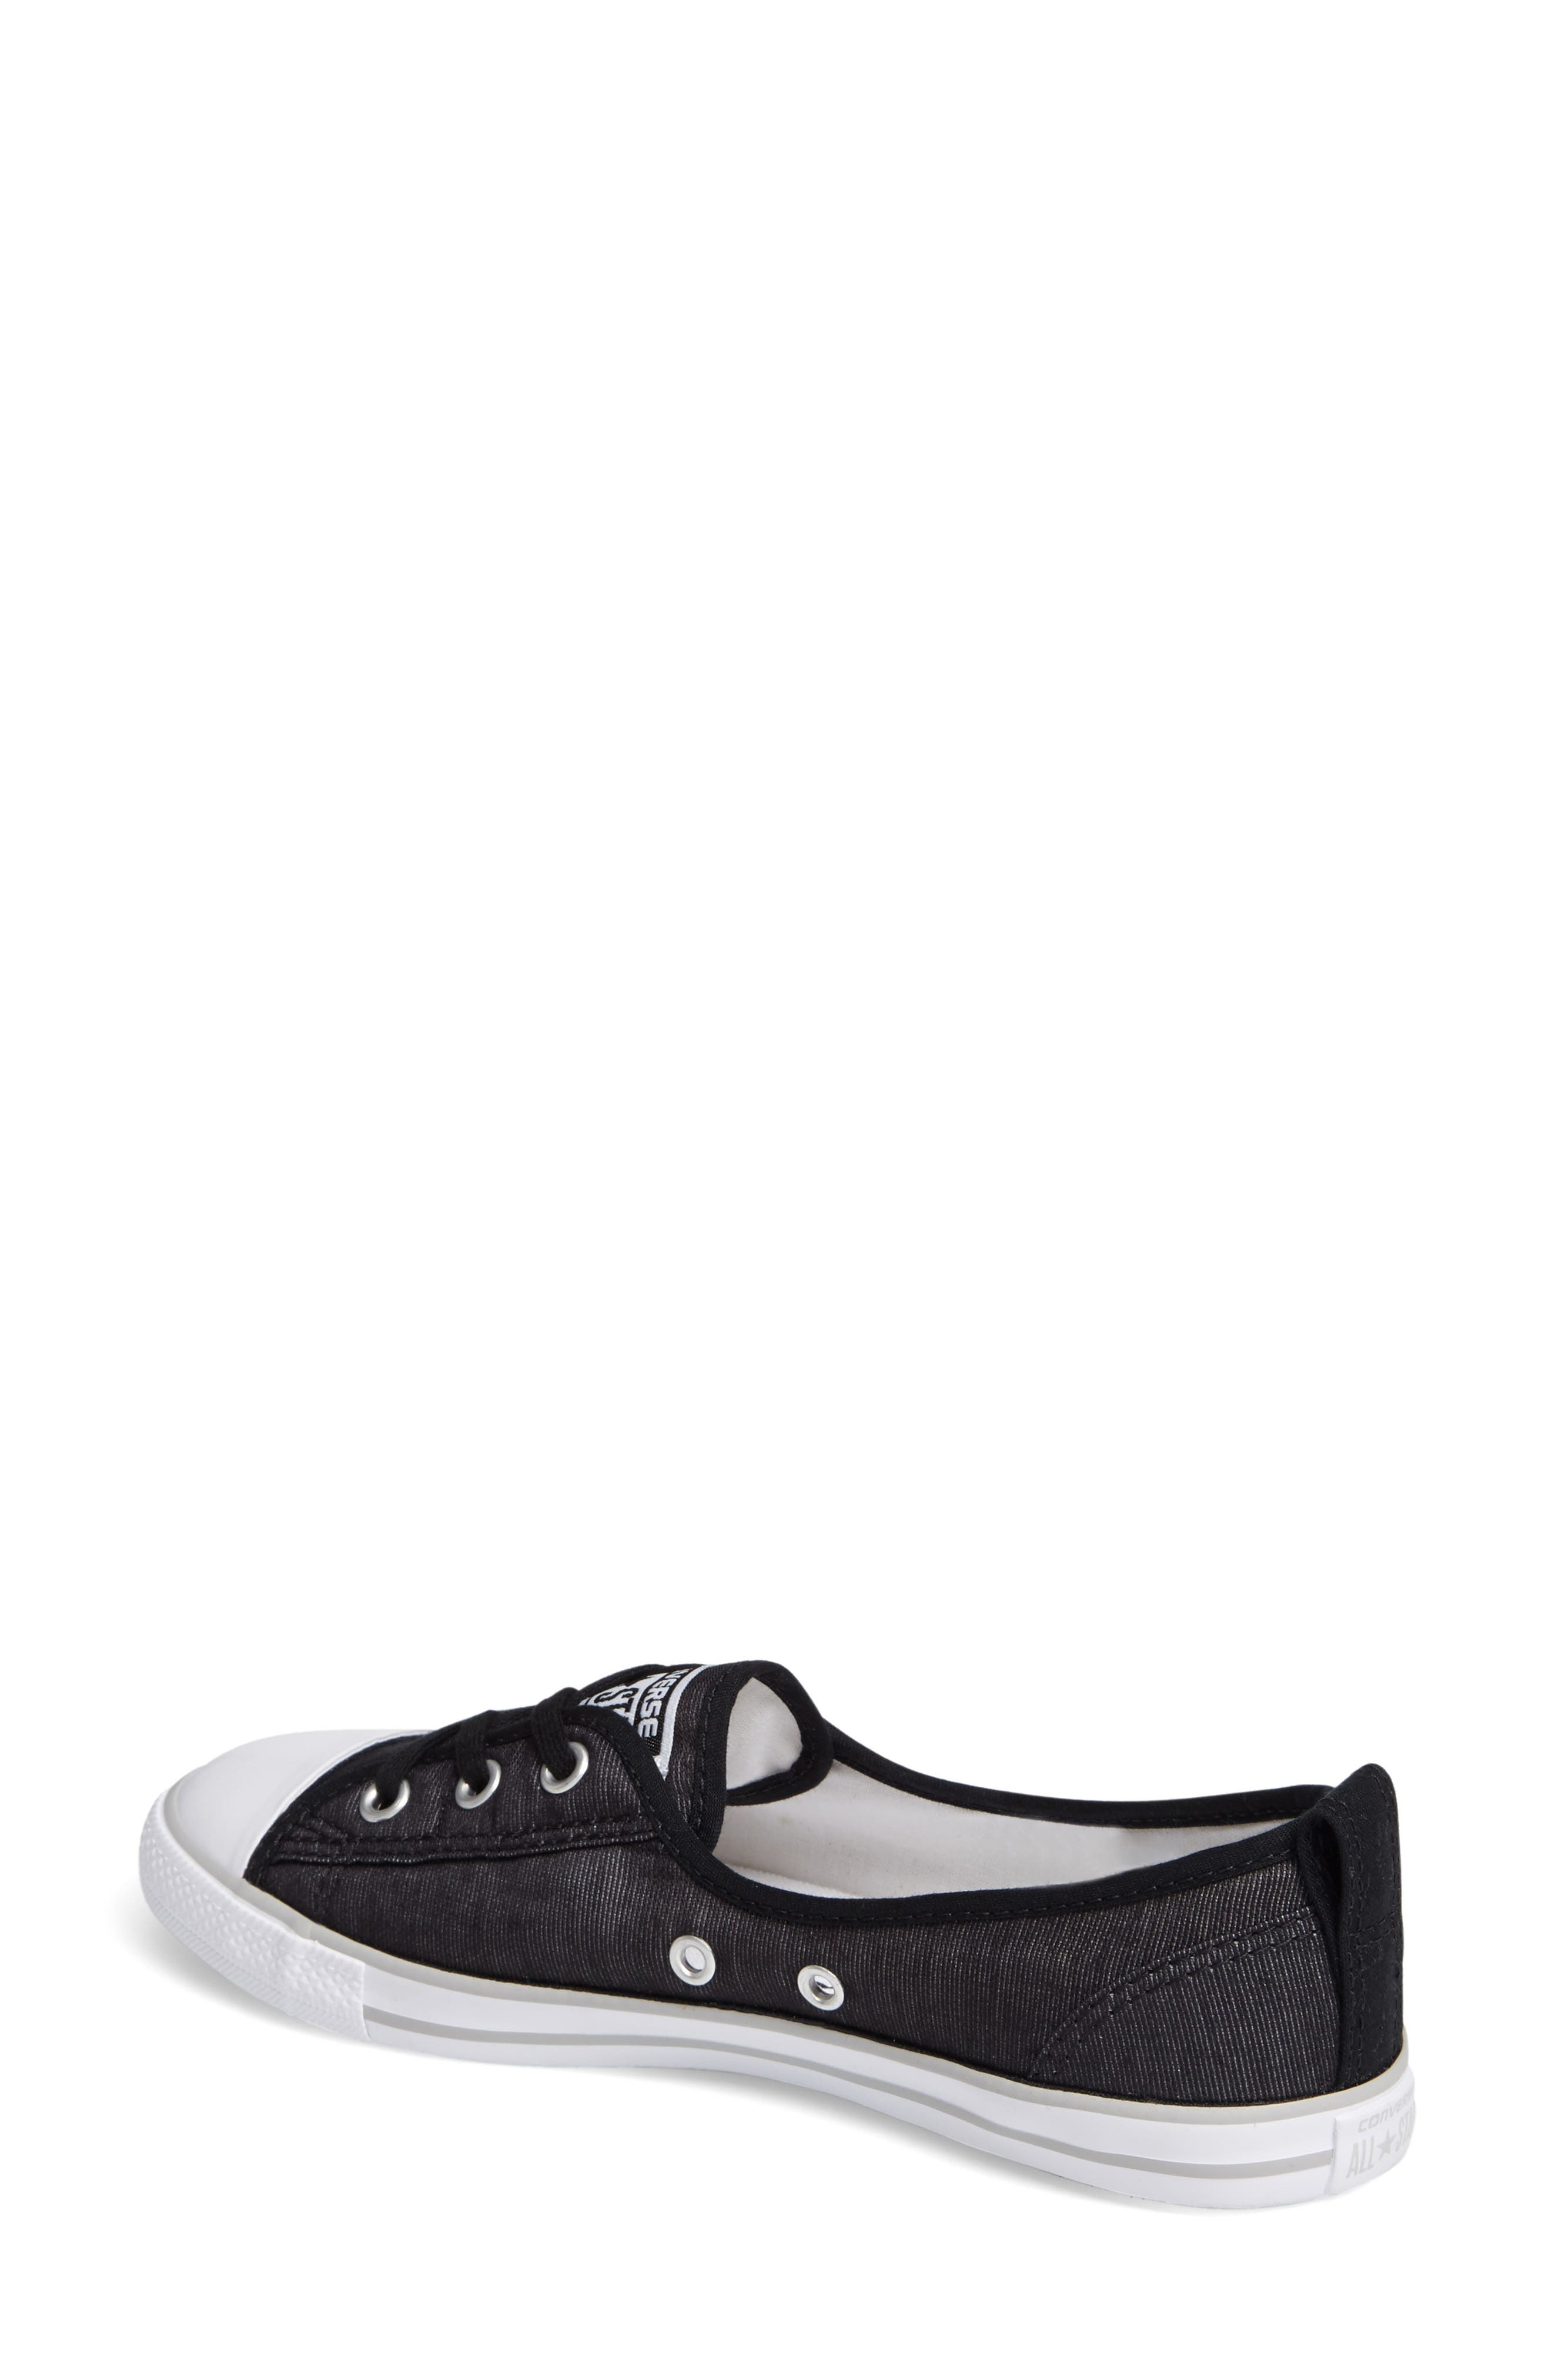 Chuck Taylor<sup>®</sup> All Star<sup>®</sup> Ballet Canvas Sneaker,                             Alternate thumbnail 2, color,                             Black/ White/ Mouse